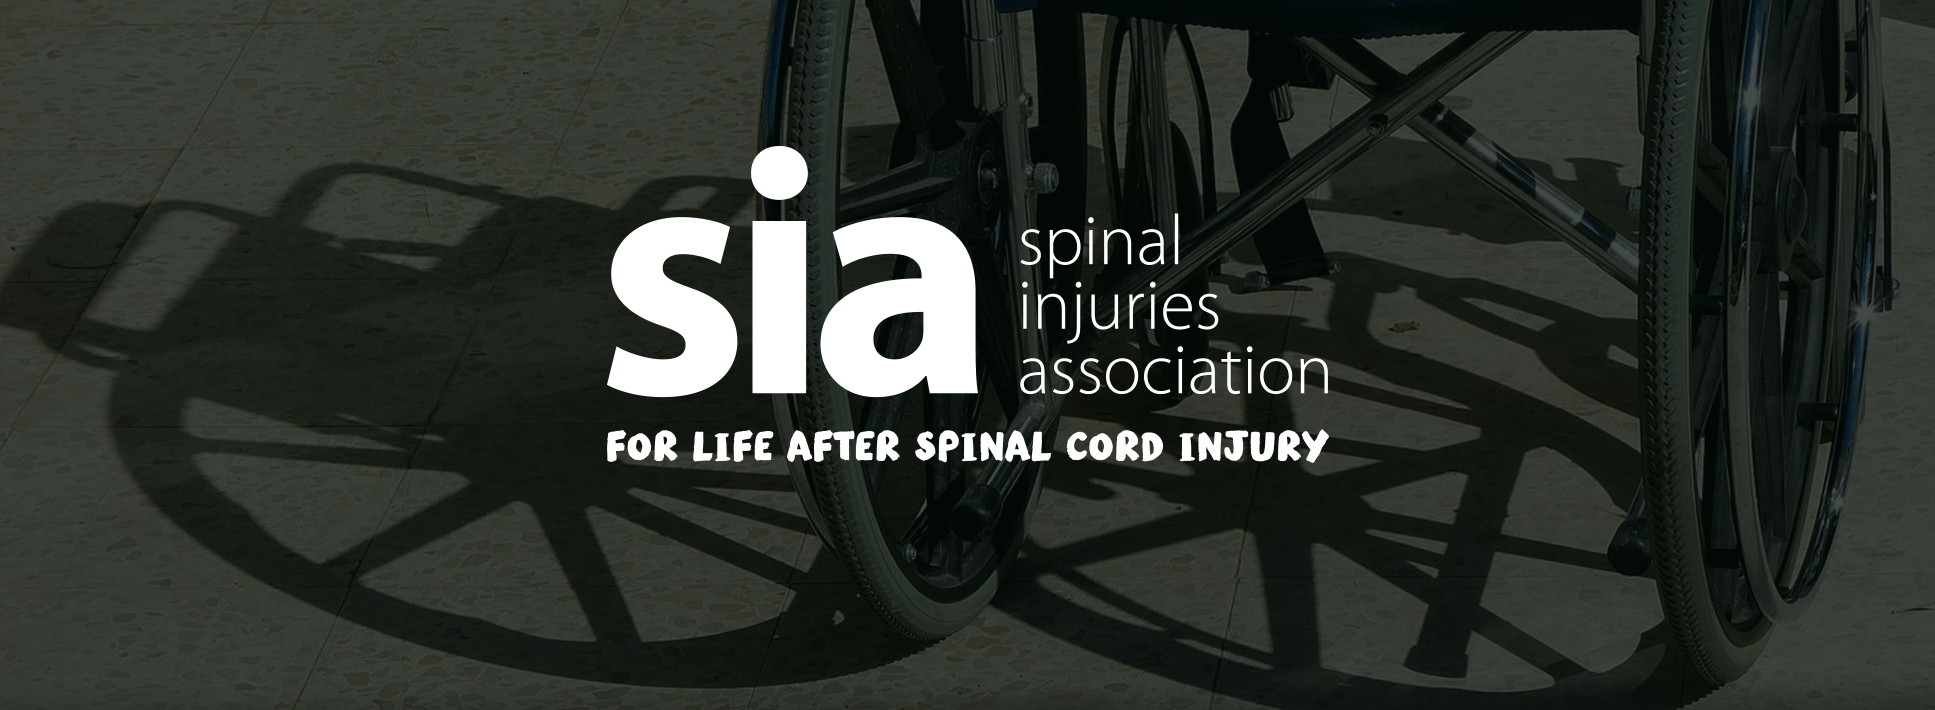 Spinal Injuries Association to continue as Official Charity of Williams Racing